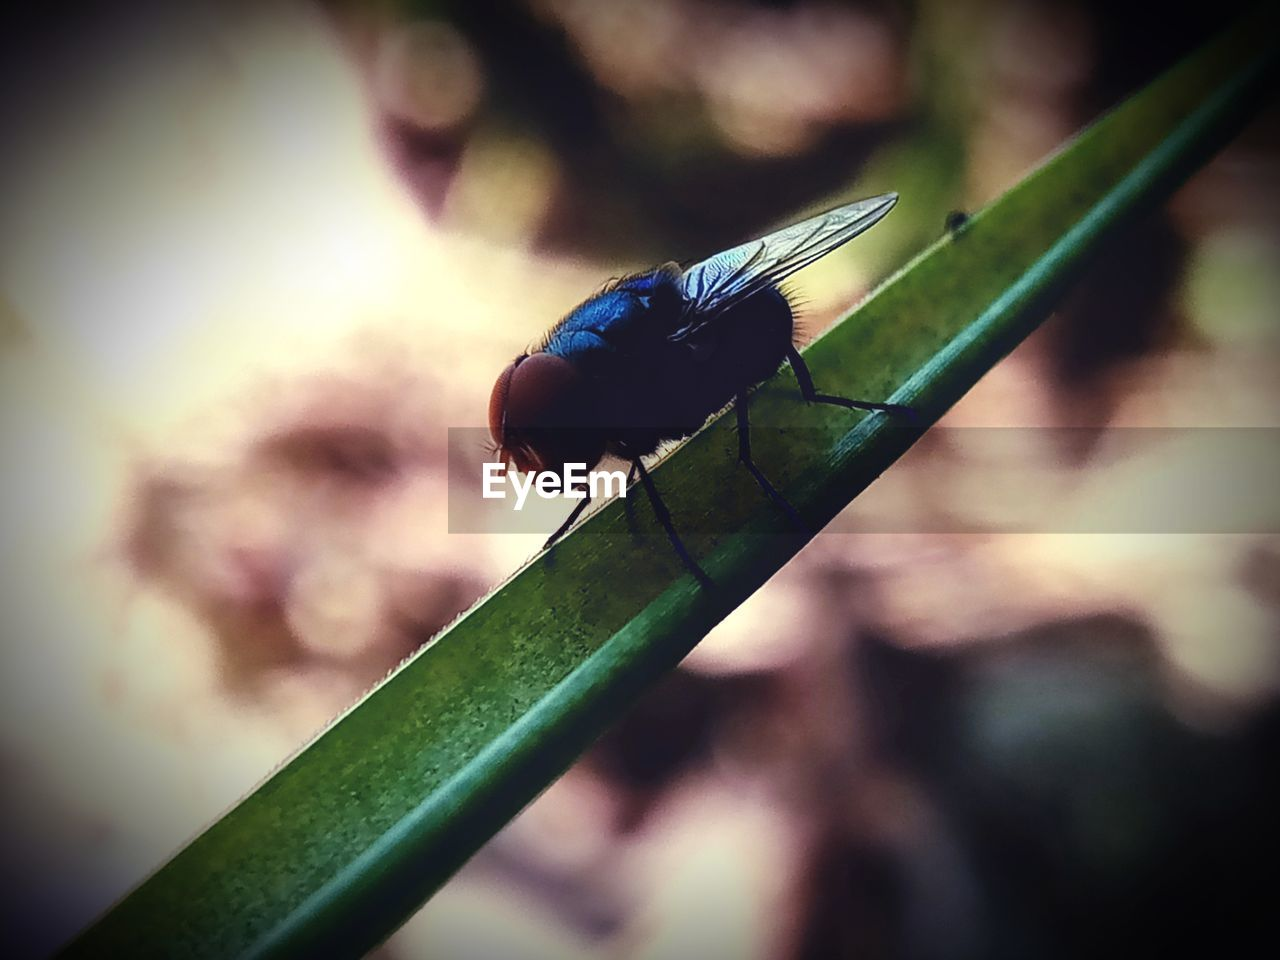 insect, invertebrate, animals in the wild, animal themes, animal wildlife, focus on foreground, animal, close-up, green color, one animal, leaf, plant part, nature, day, no people, animal wing, damselfly, outdoors, plant, selective focus, blade of grass